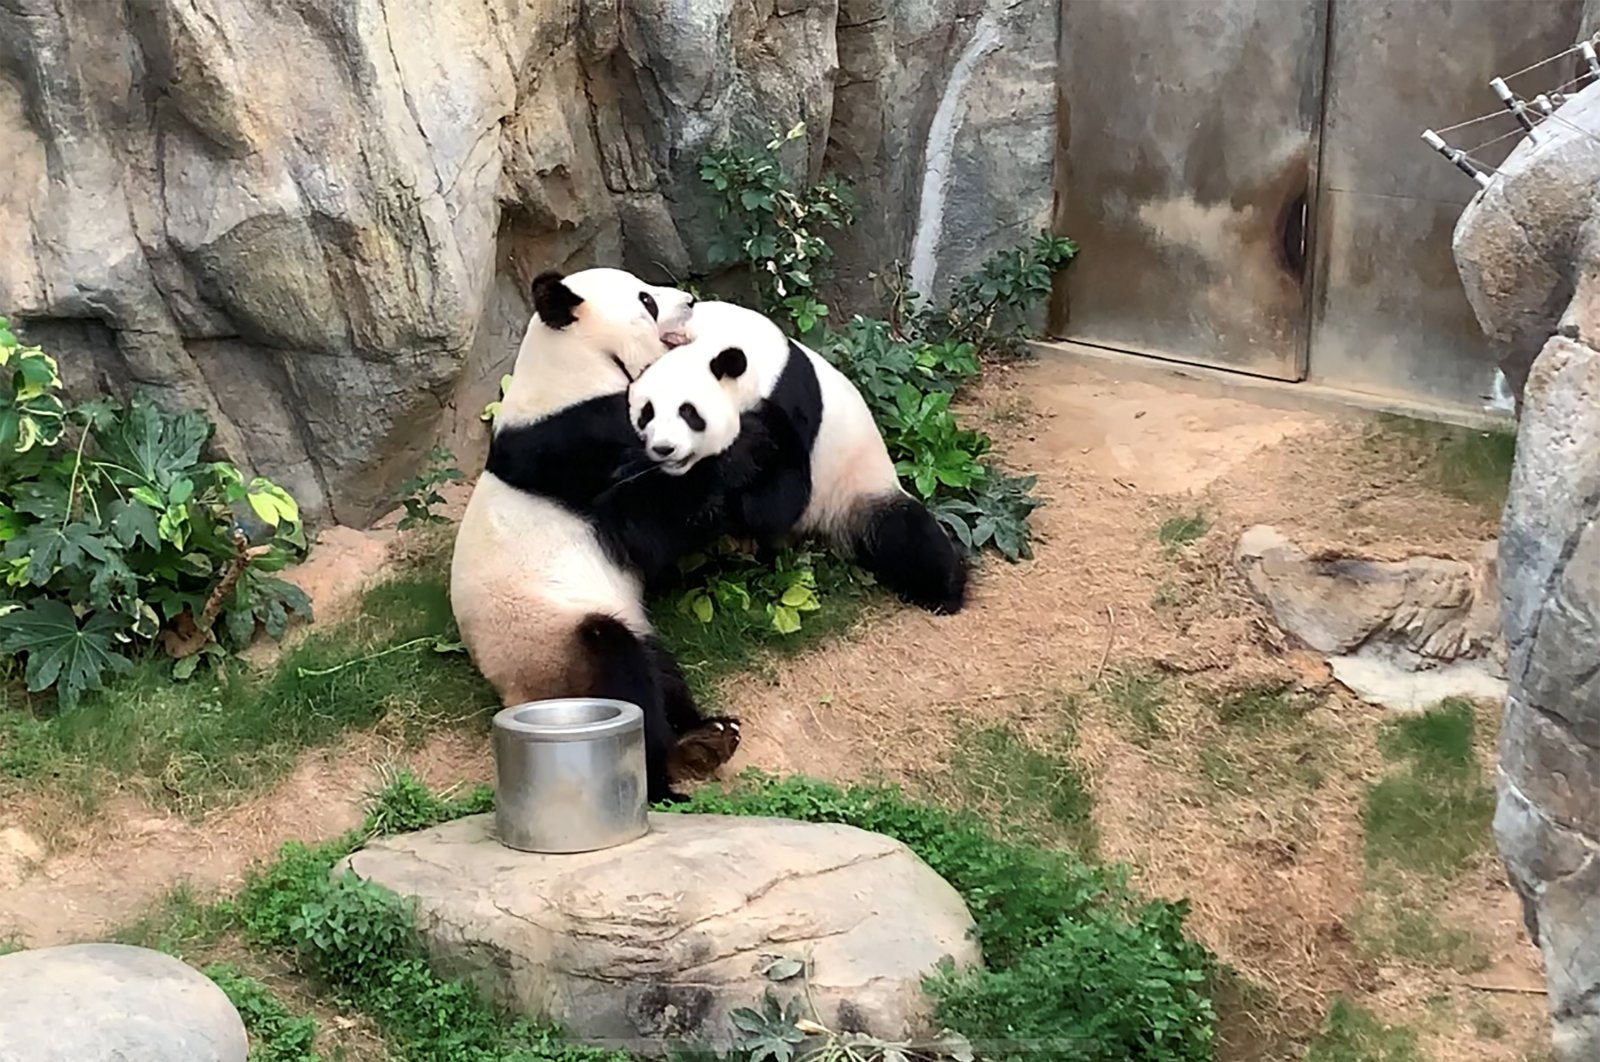 This handout photo provided by Ocean Park Hong Kong shows giant pandas Ying Ying and Le Le before mating at Ocean Park in Hong Kong on Monday, April 6, 2020. (AFP Photo)